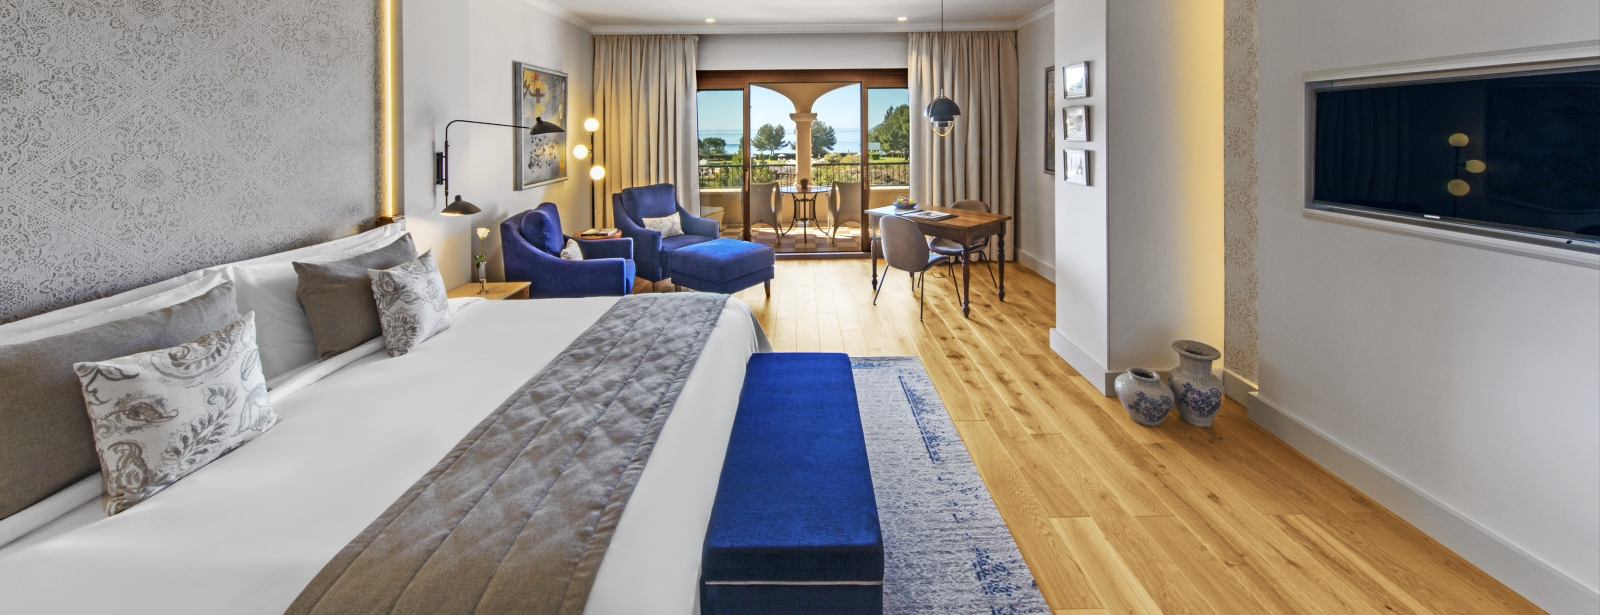 New refurbished Junior Suite with Sea View at The St. Regis Mardavall